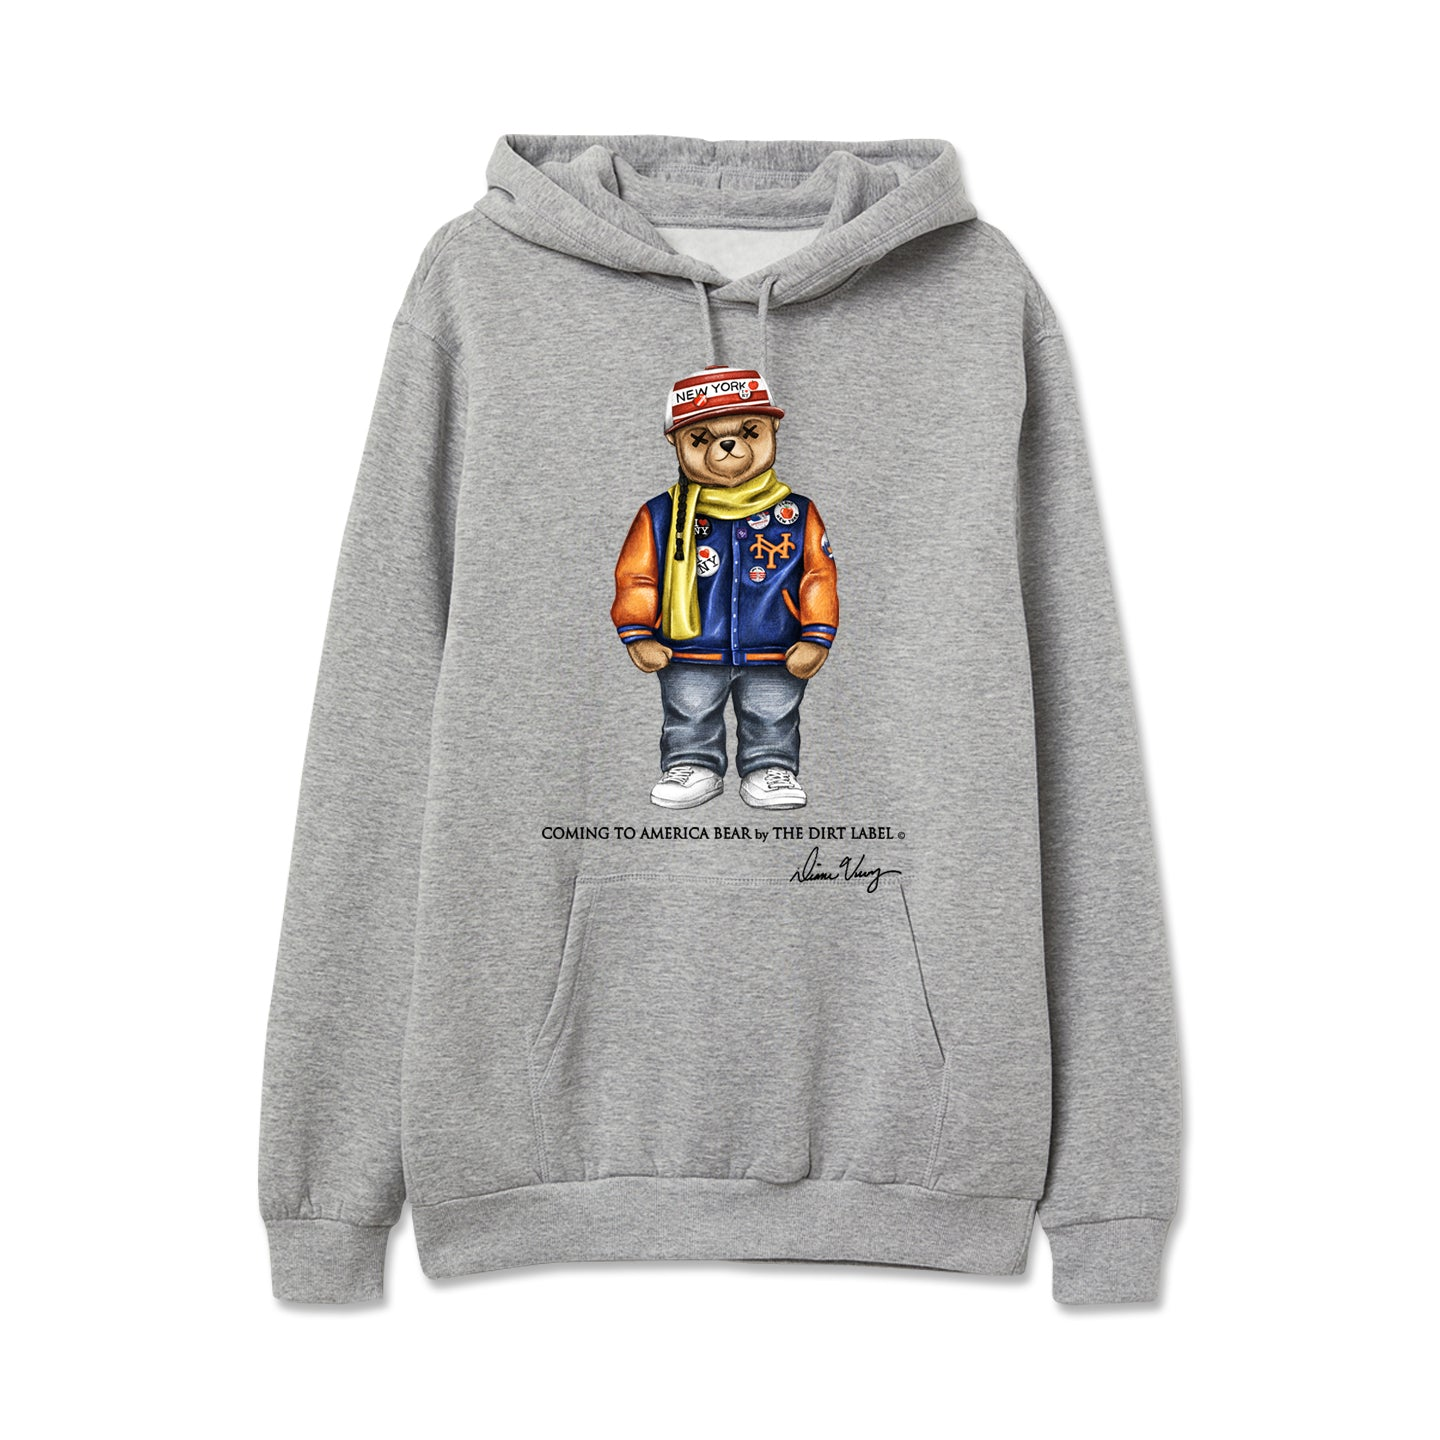 Coming to America Hoodie (Grey - Limited Edition)